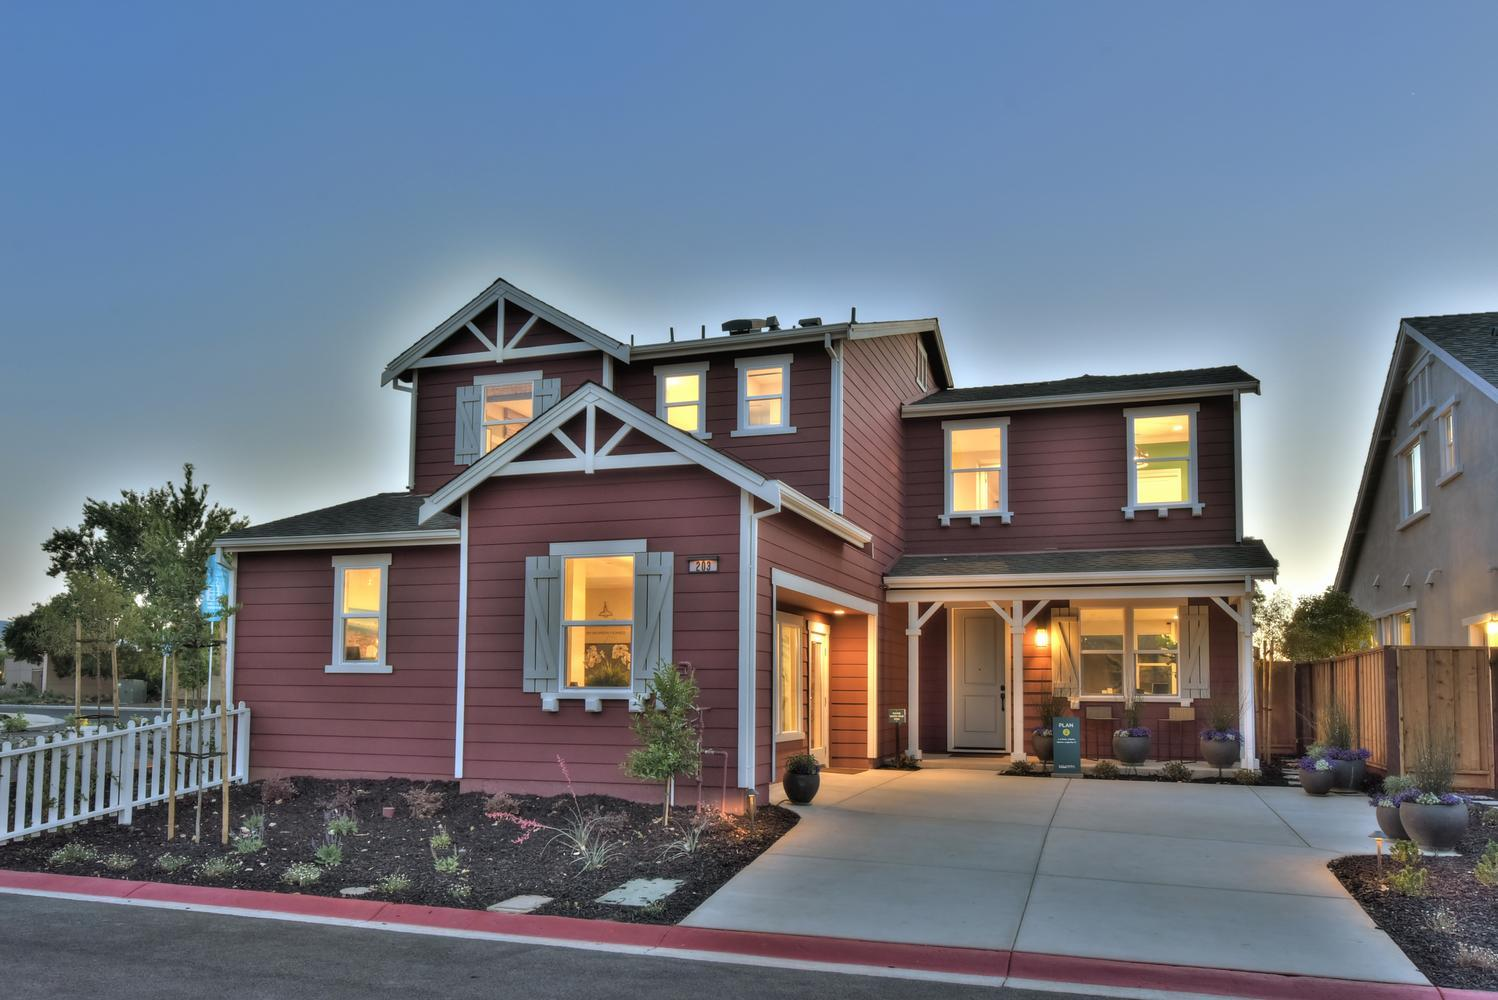 Harper Parc in Brentwood, CA, New Homes & Floor Plans by Nuvera Homes